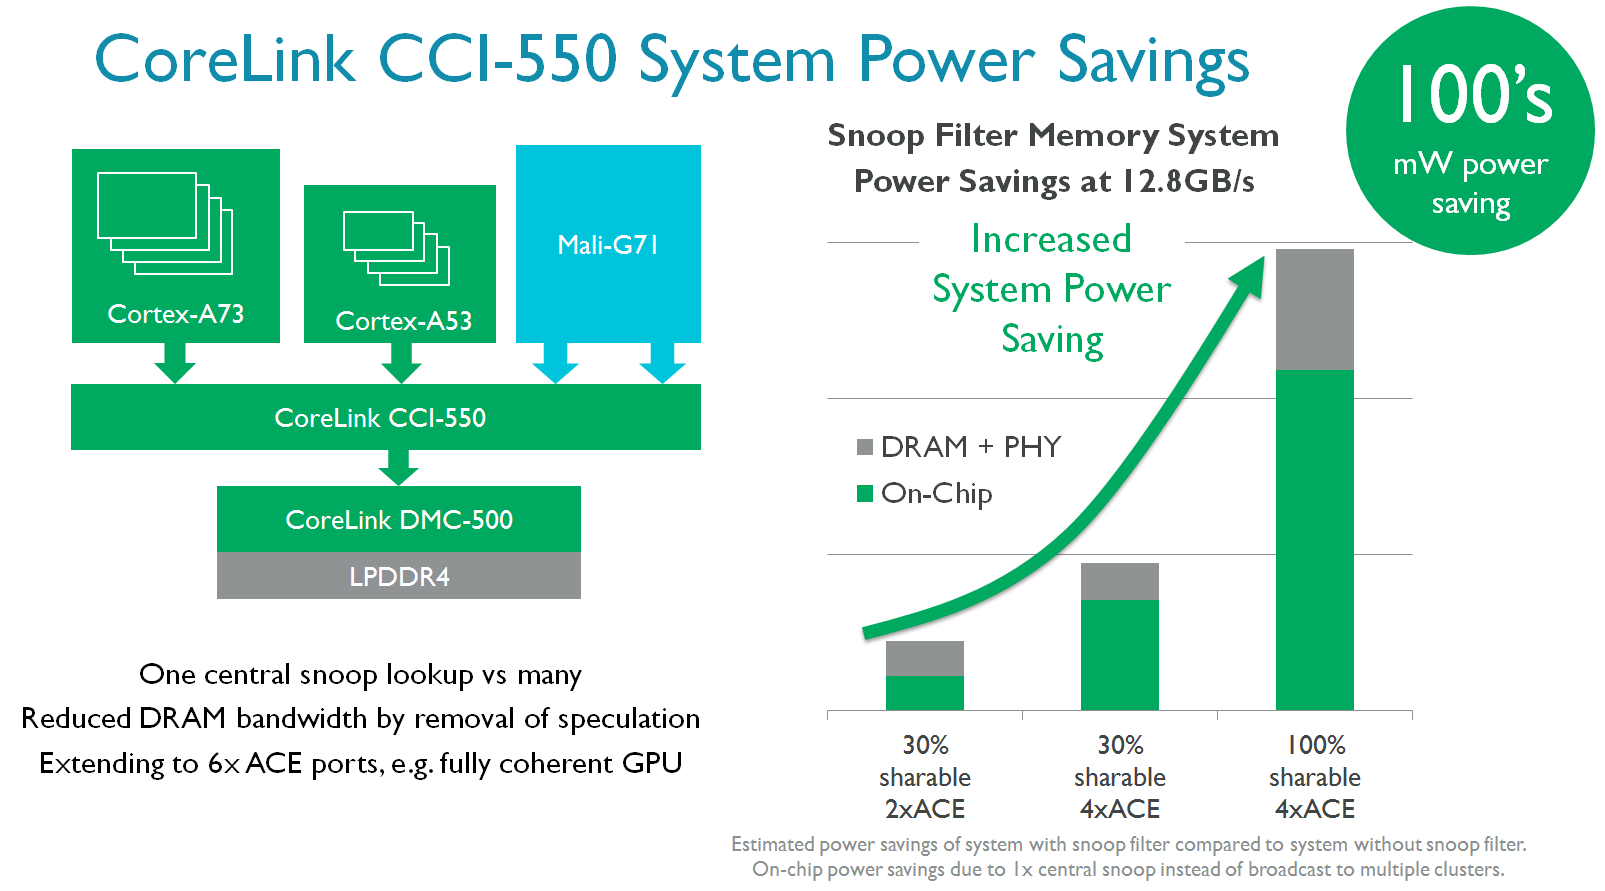 9-CCI-550-System-Power-Savings.png